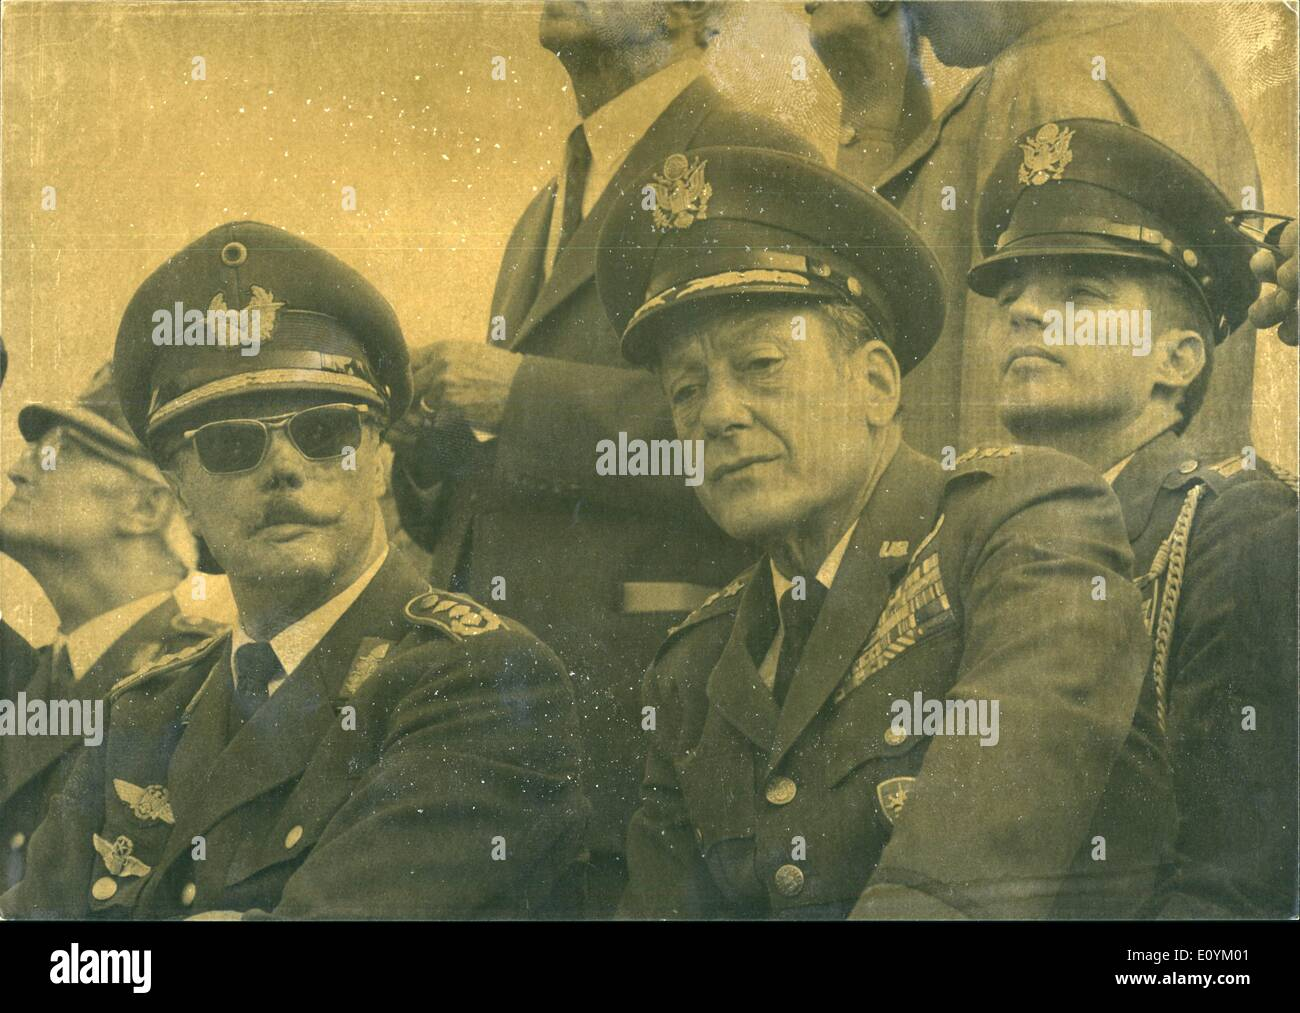 Sep. 09, 1970 - German American Air Force Maneuver ''Black Sky'', September 7th to 10th, in the South of the Federal Republic. Photo shows watching the maneuver - General Johannes Steinhoff, FRG, (left) and the American four-star General J.R. Holzapple. - Stock Image